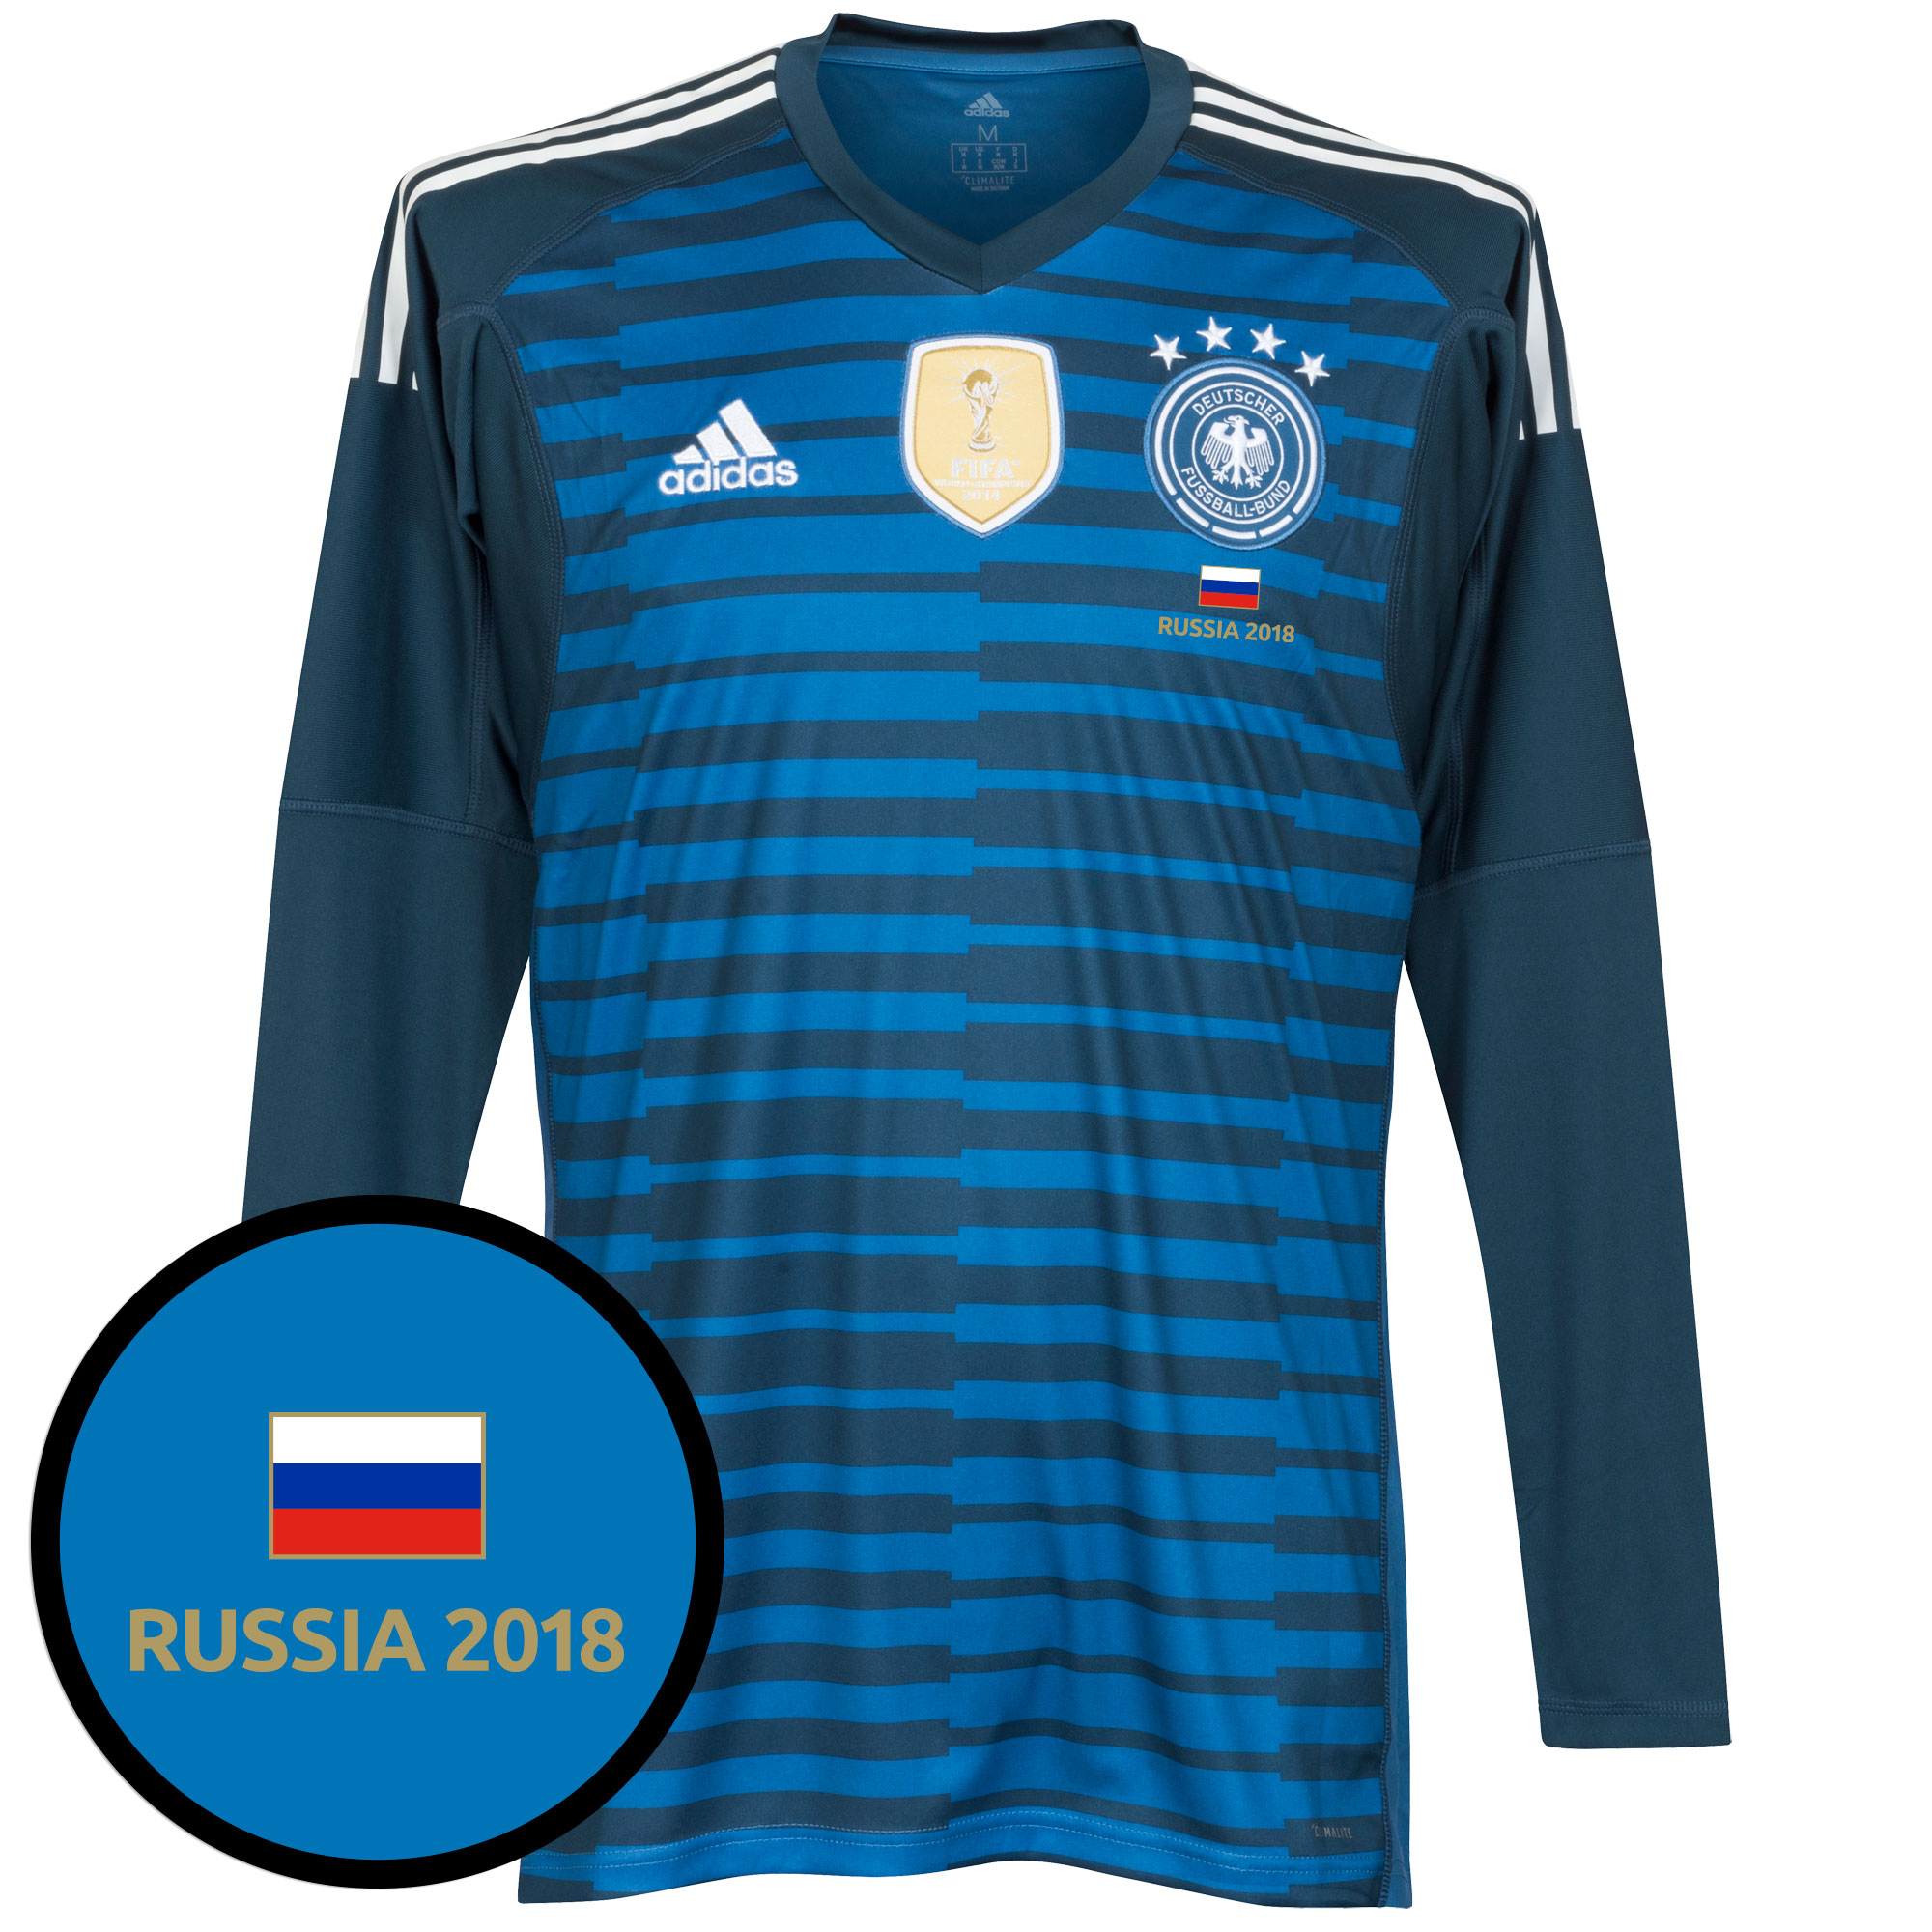 Germany World Cup Home GK Shirt 2018 inc FREE Russia 2018 Tournamant Transfer